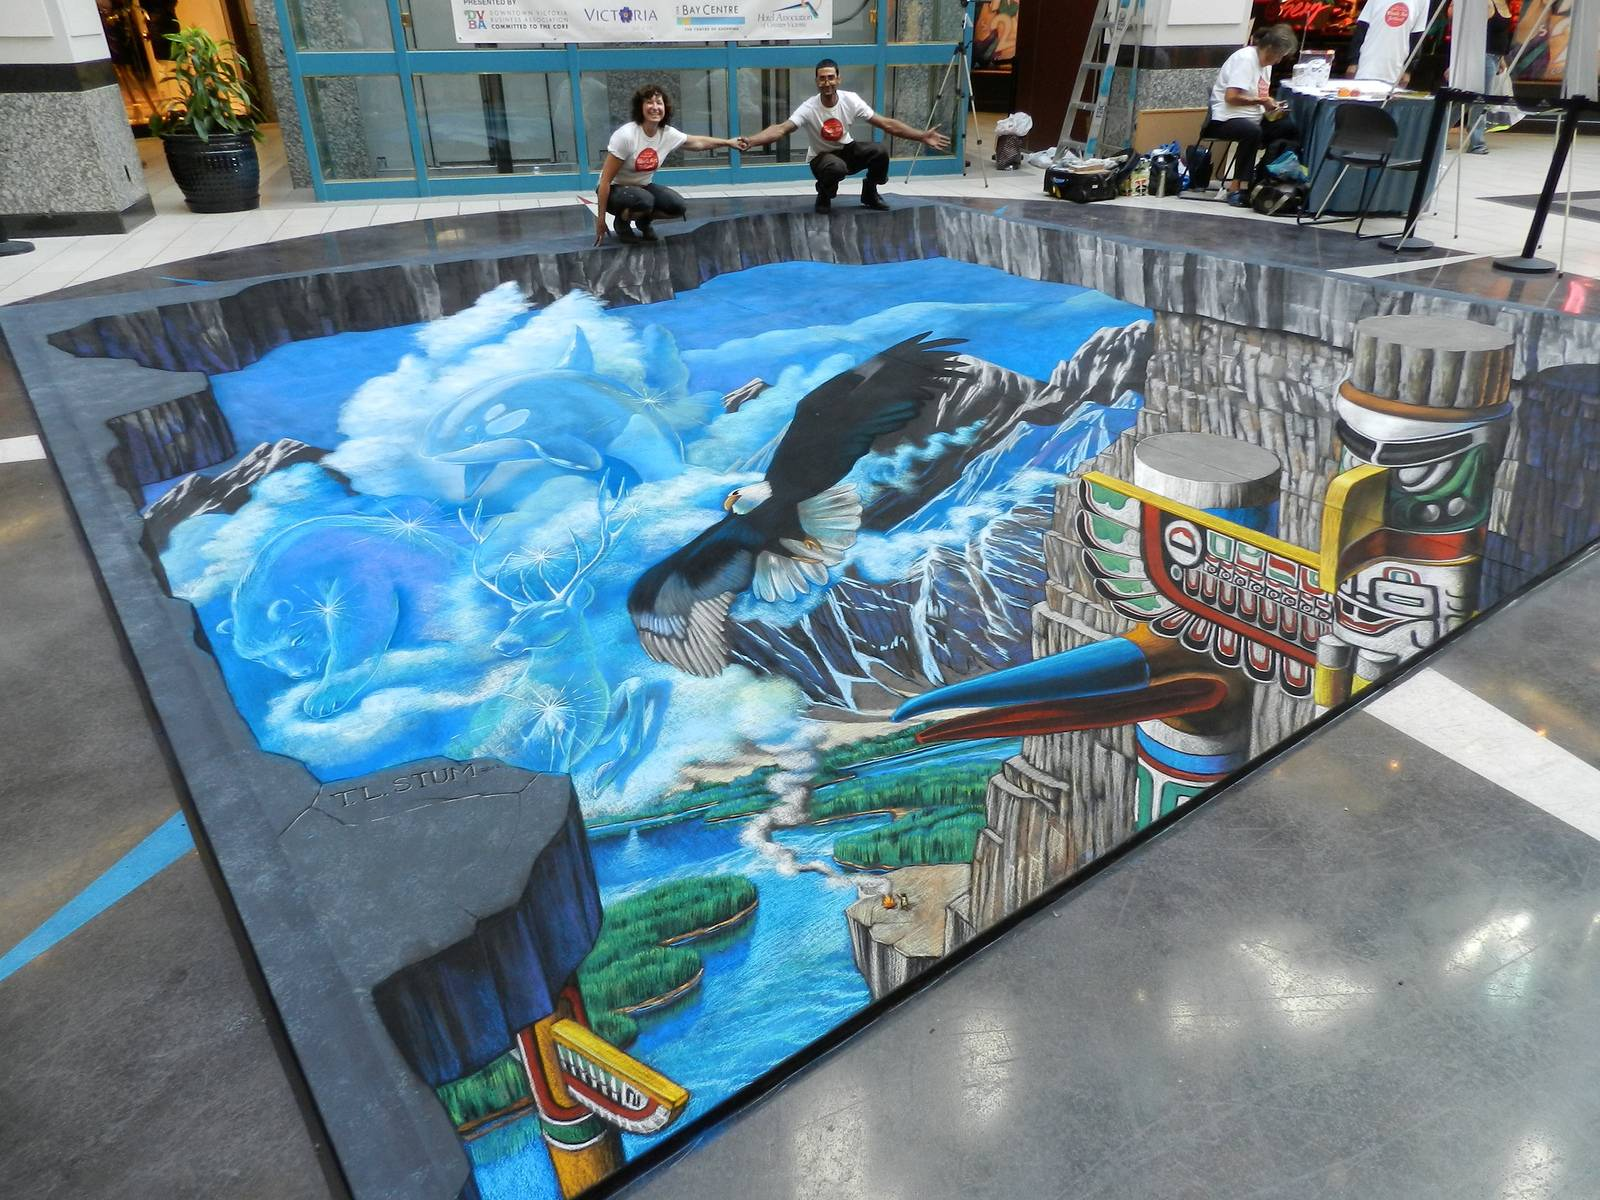 Tracy Lee Stum – 3D sidewalk art